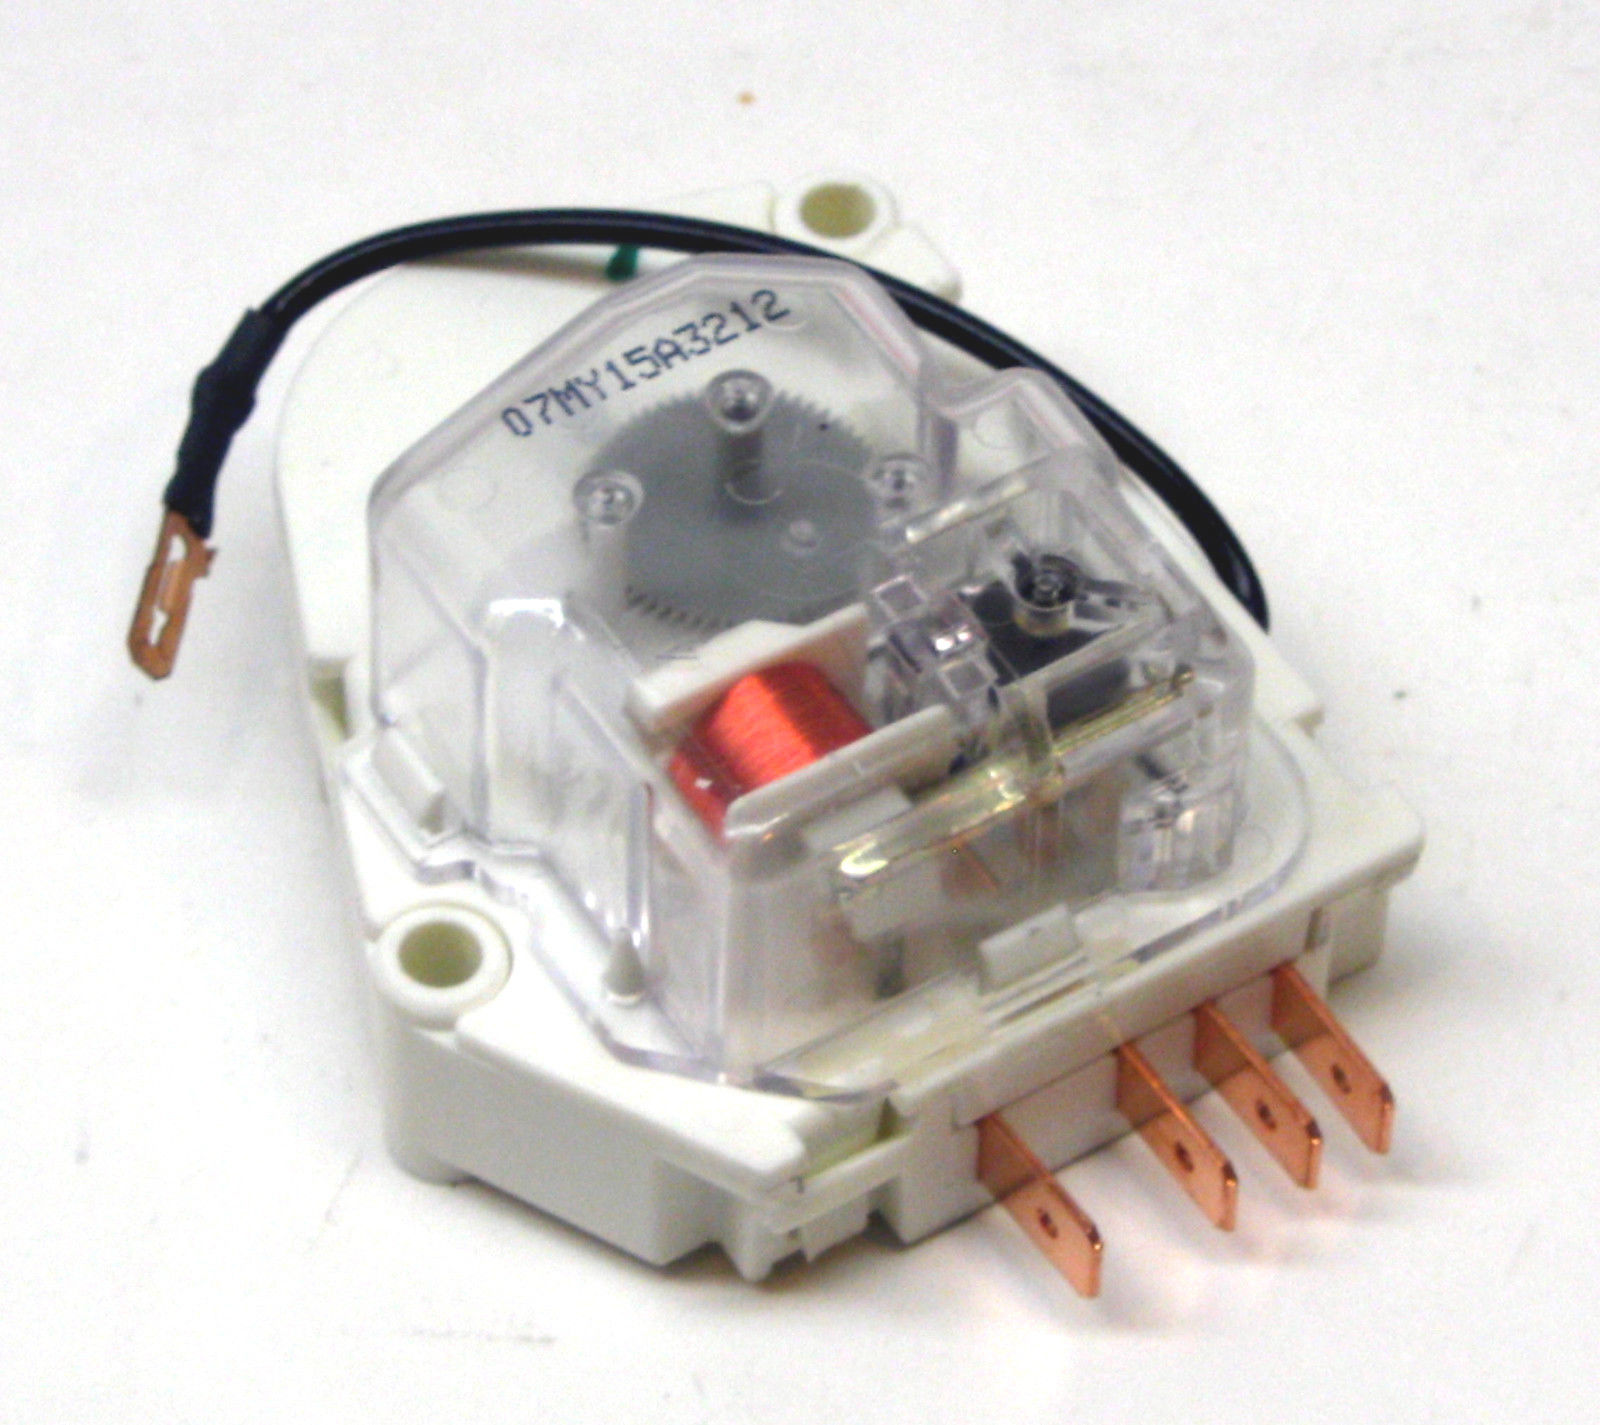 Whirlpool Refrigerator Defrost Timer Control W10822278 For Ap5985208 482493 Wiring Diagram Ps11723171